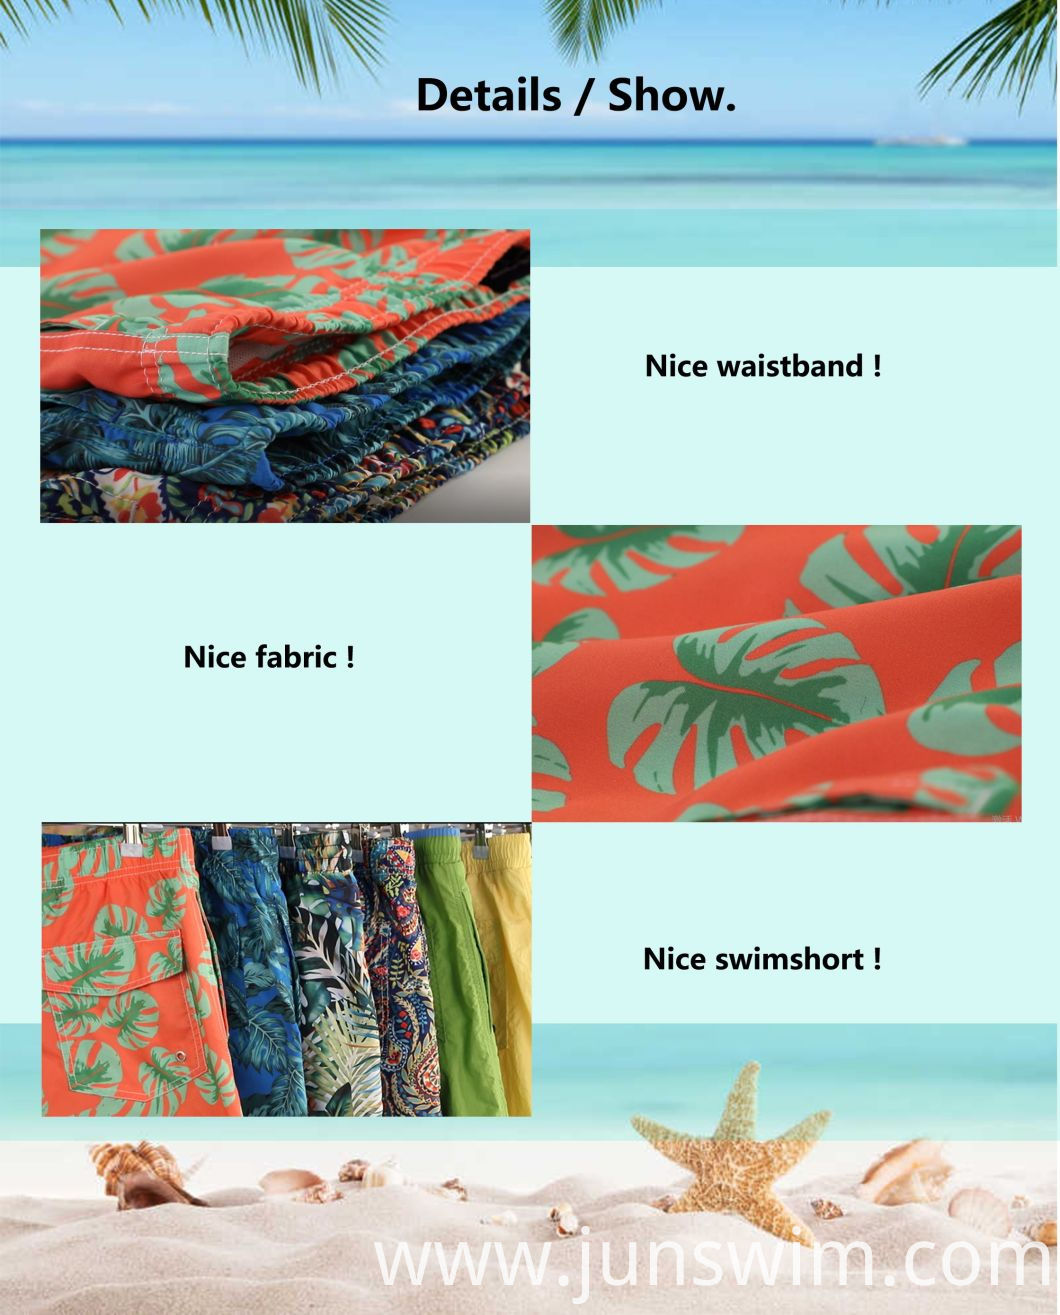 100%Polyester Digital Print Full Elastic Waistband for Swim Quick Dry Water Repellent Fashion Man's Swimming Short